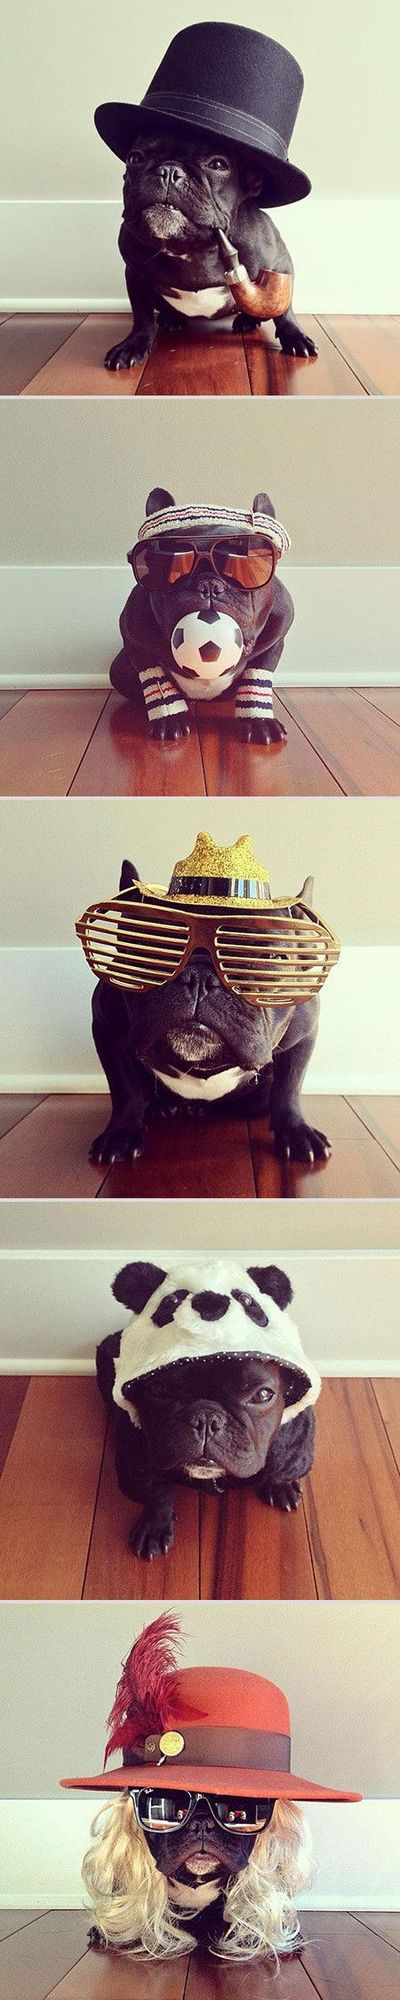 While Norm might be the pug with the best selfies on the Internet, Trotter is definitely the master of disguise among the French Bulldogs! With more than 165,000 followers on Instagram, this San Francisco-based hipster pup keeps surprising her fans with n...